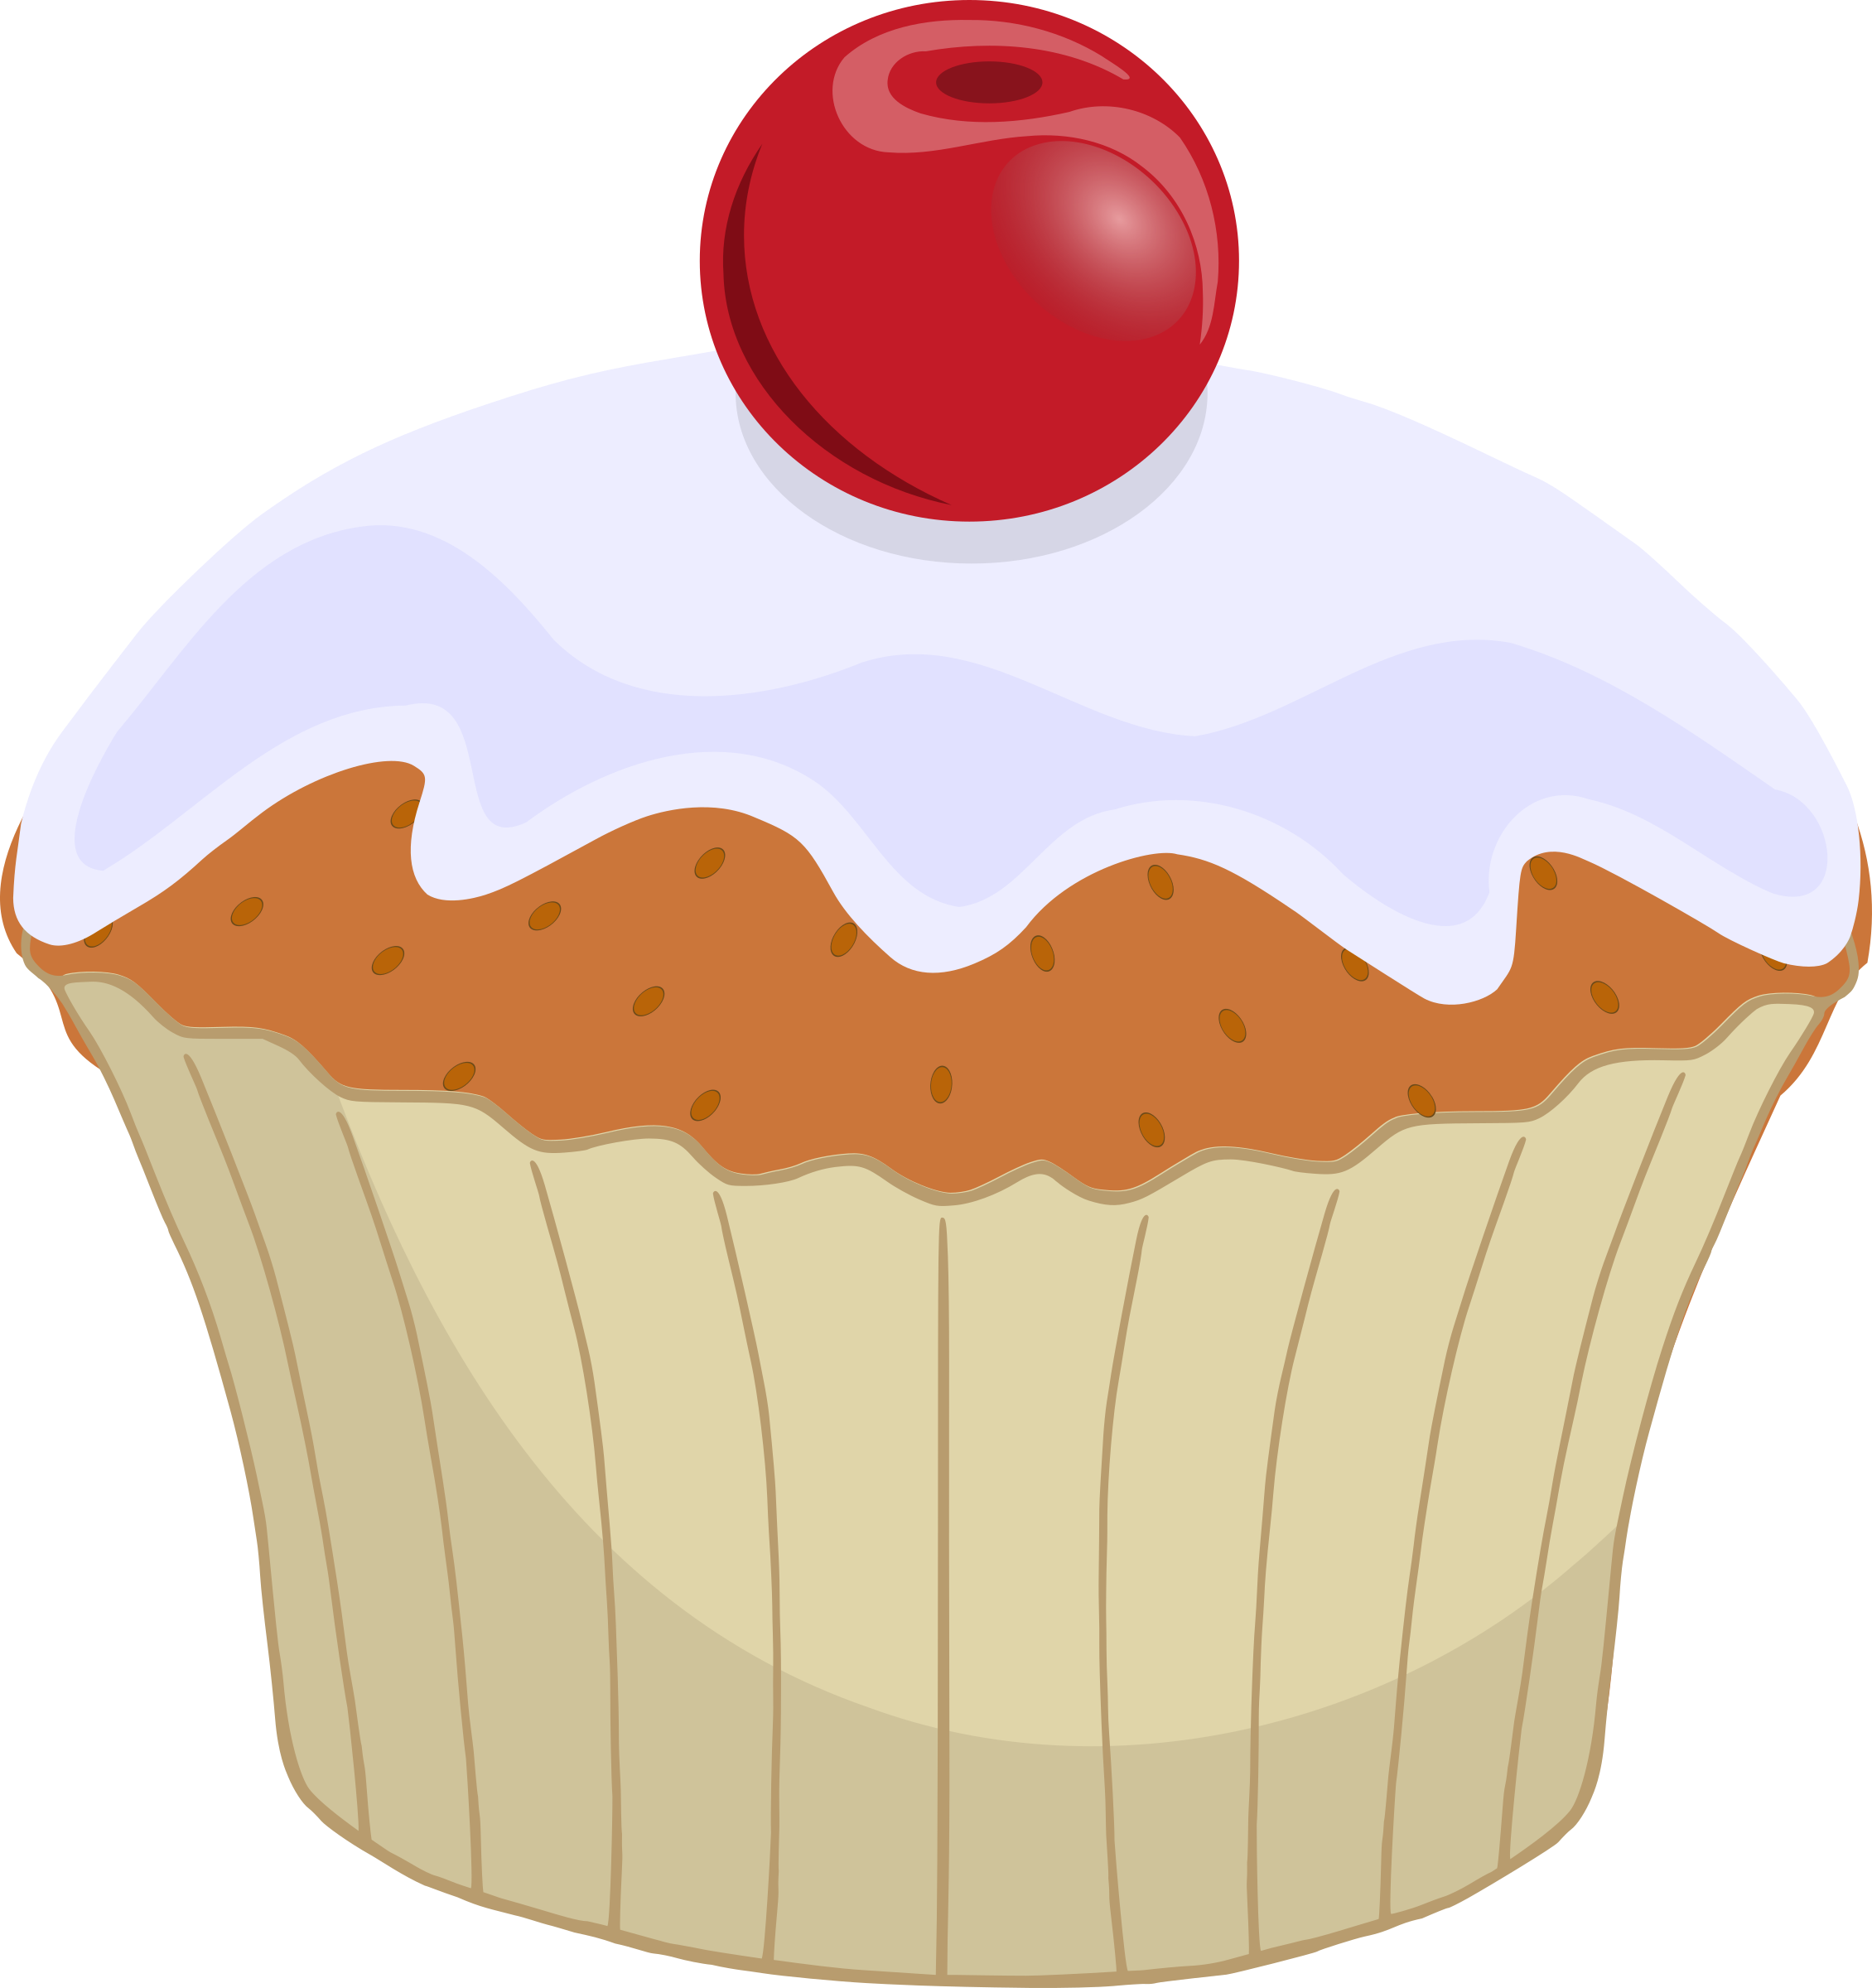 Muffin clipart frosted cupcake. Frosting icing cherry clip